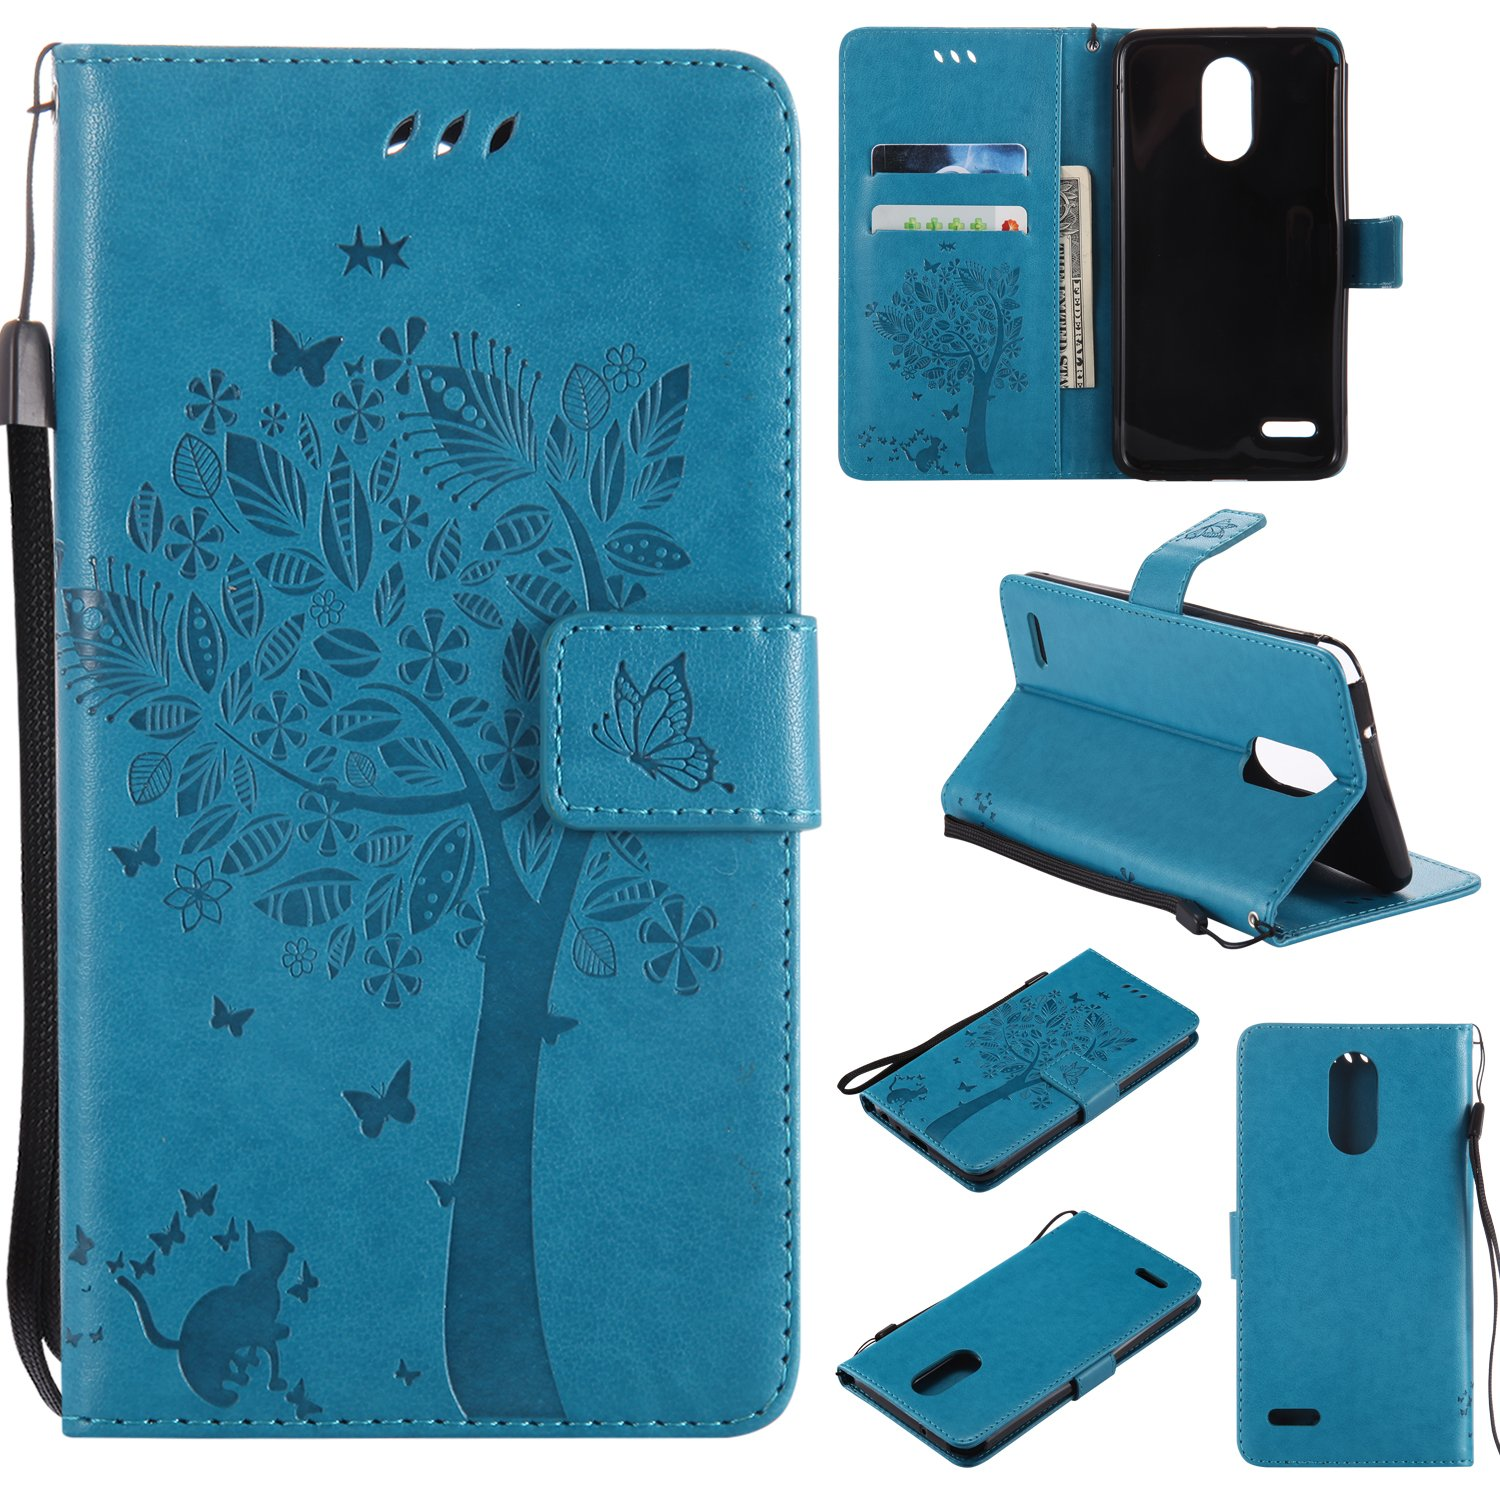 LG Stylo 3 Case,Stylus 3 Plus Wallet Case,Premium Vintage Emboss Floral PU Leather Built-in Card/Cash Slots,Stand Magnetic Wristlet Strap Case by Zvkvamt (Tree-Blue)